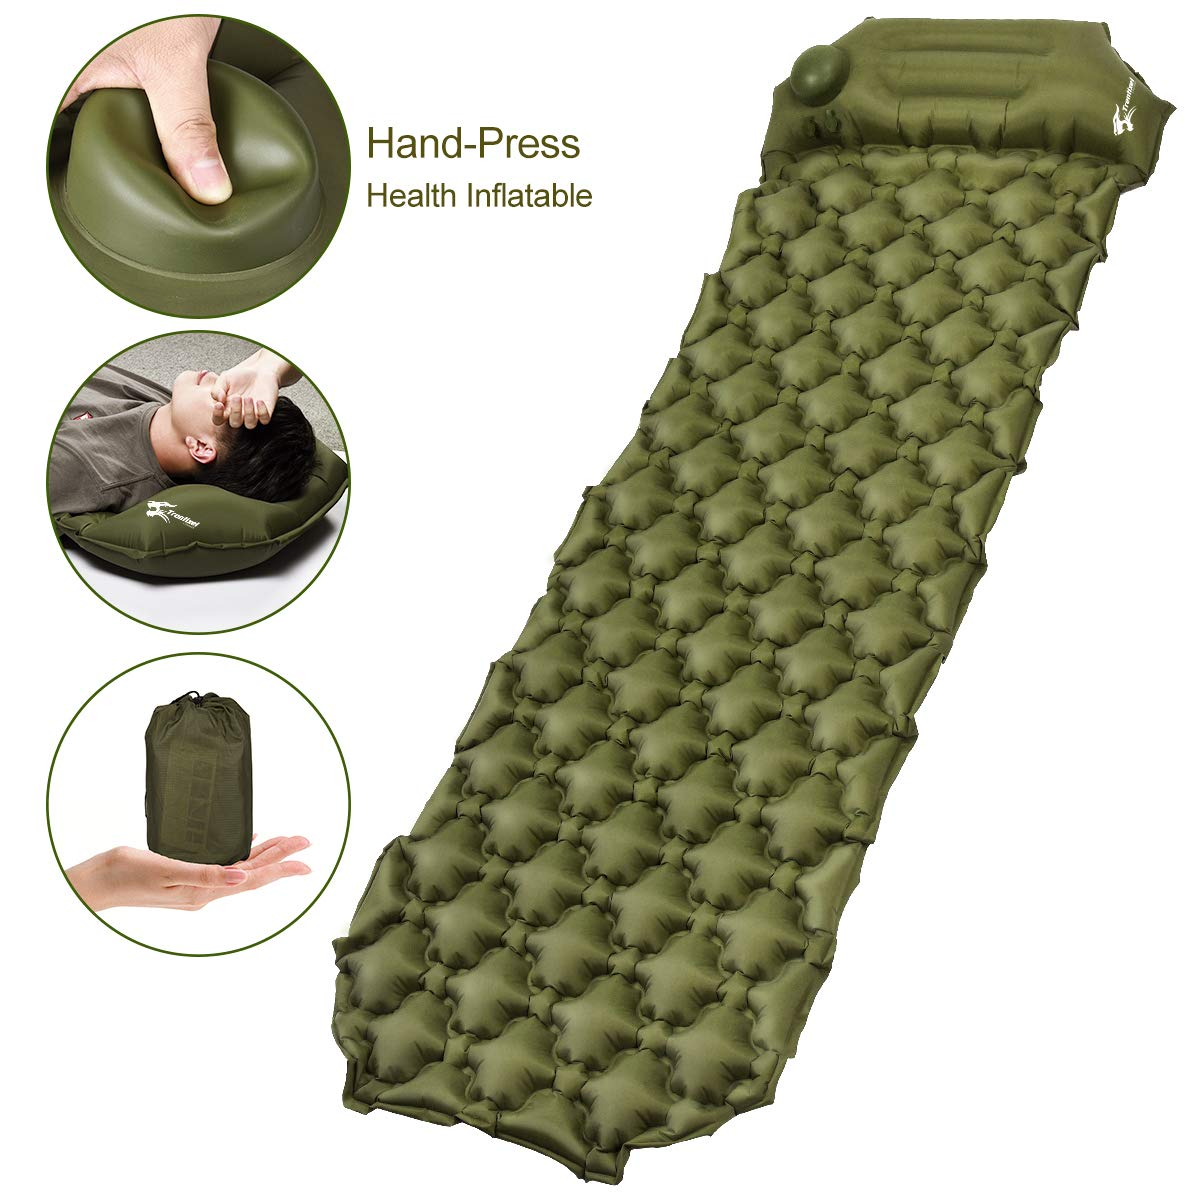 Camping Sleeping Pad, Upgraded Inflatable Camping Mat with Built-in Pump, 2.5'' Thick Sleeping Pads, Durable Waterproof Air Mattress Compact Ultralight Hiking Pad for Tent,Travel, Backpacking, Hiking by Trentixel